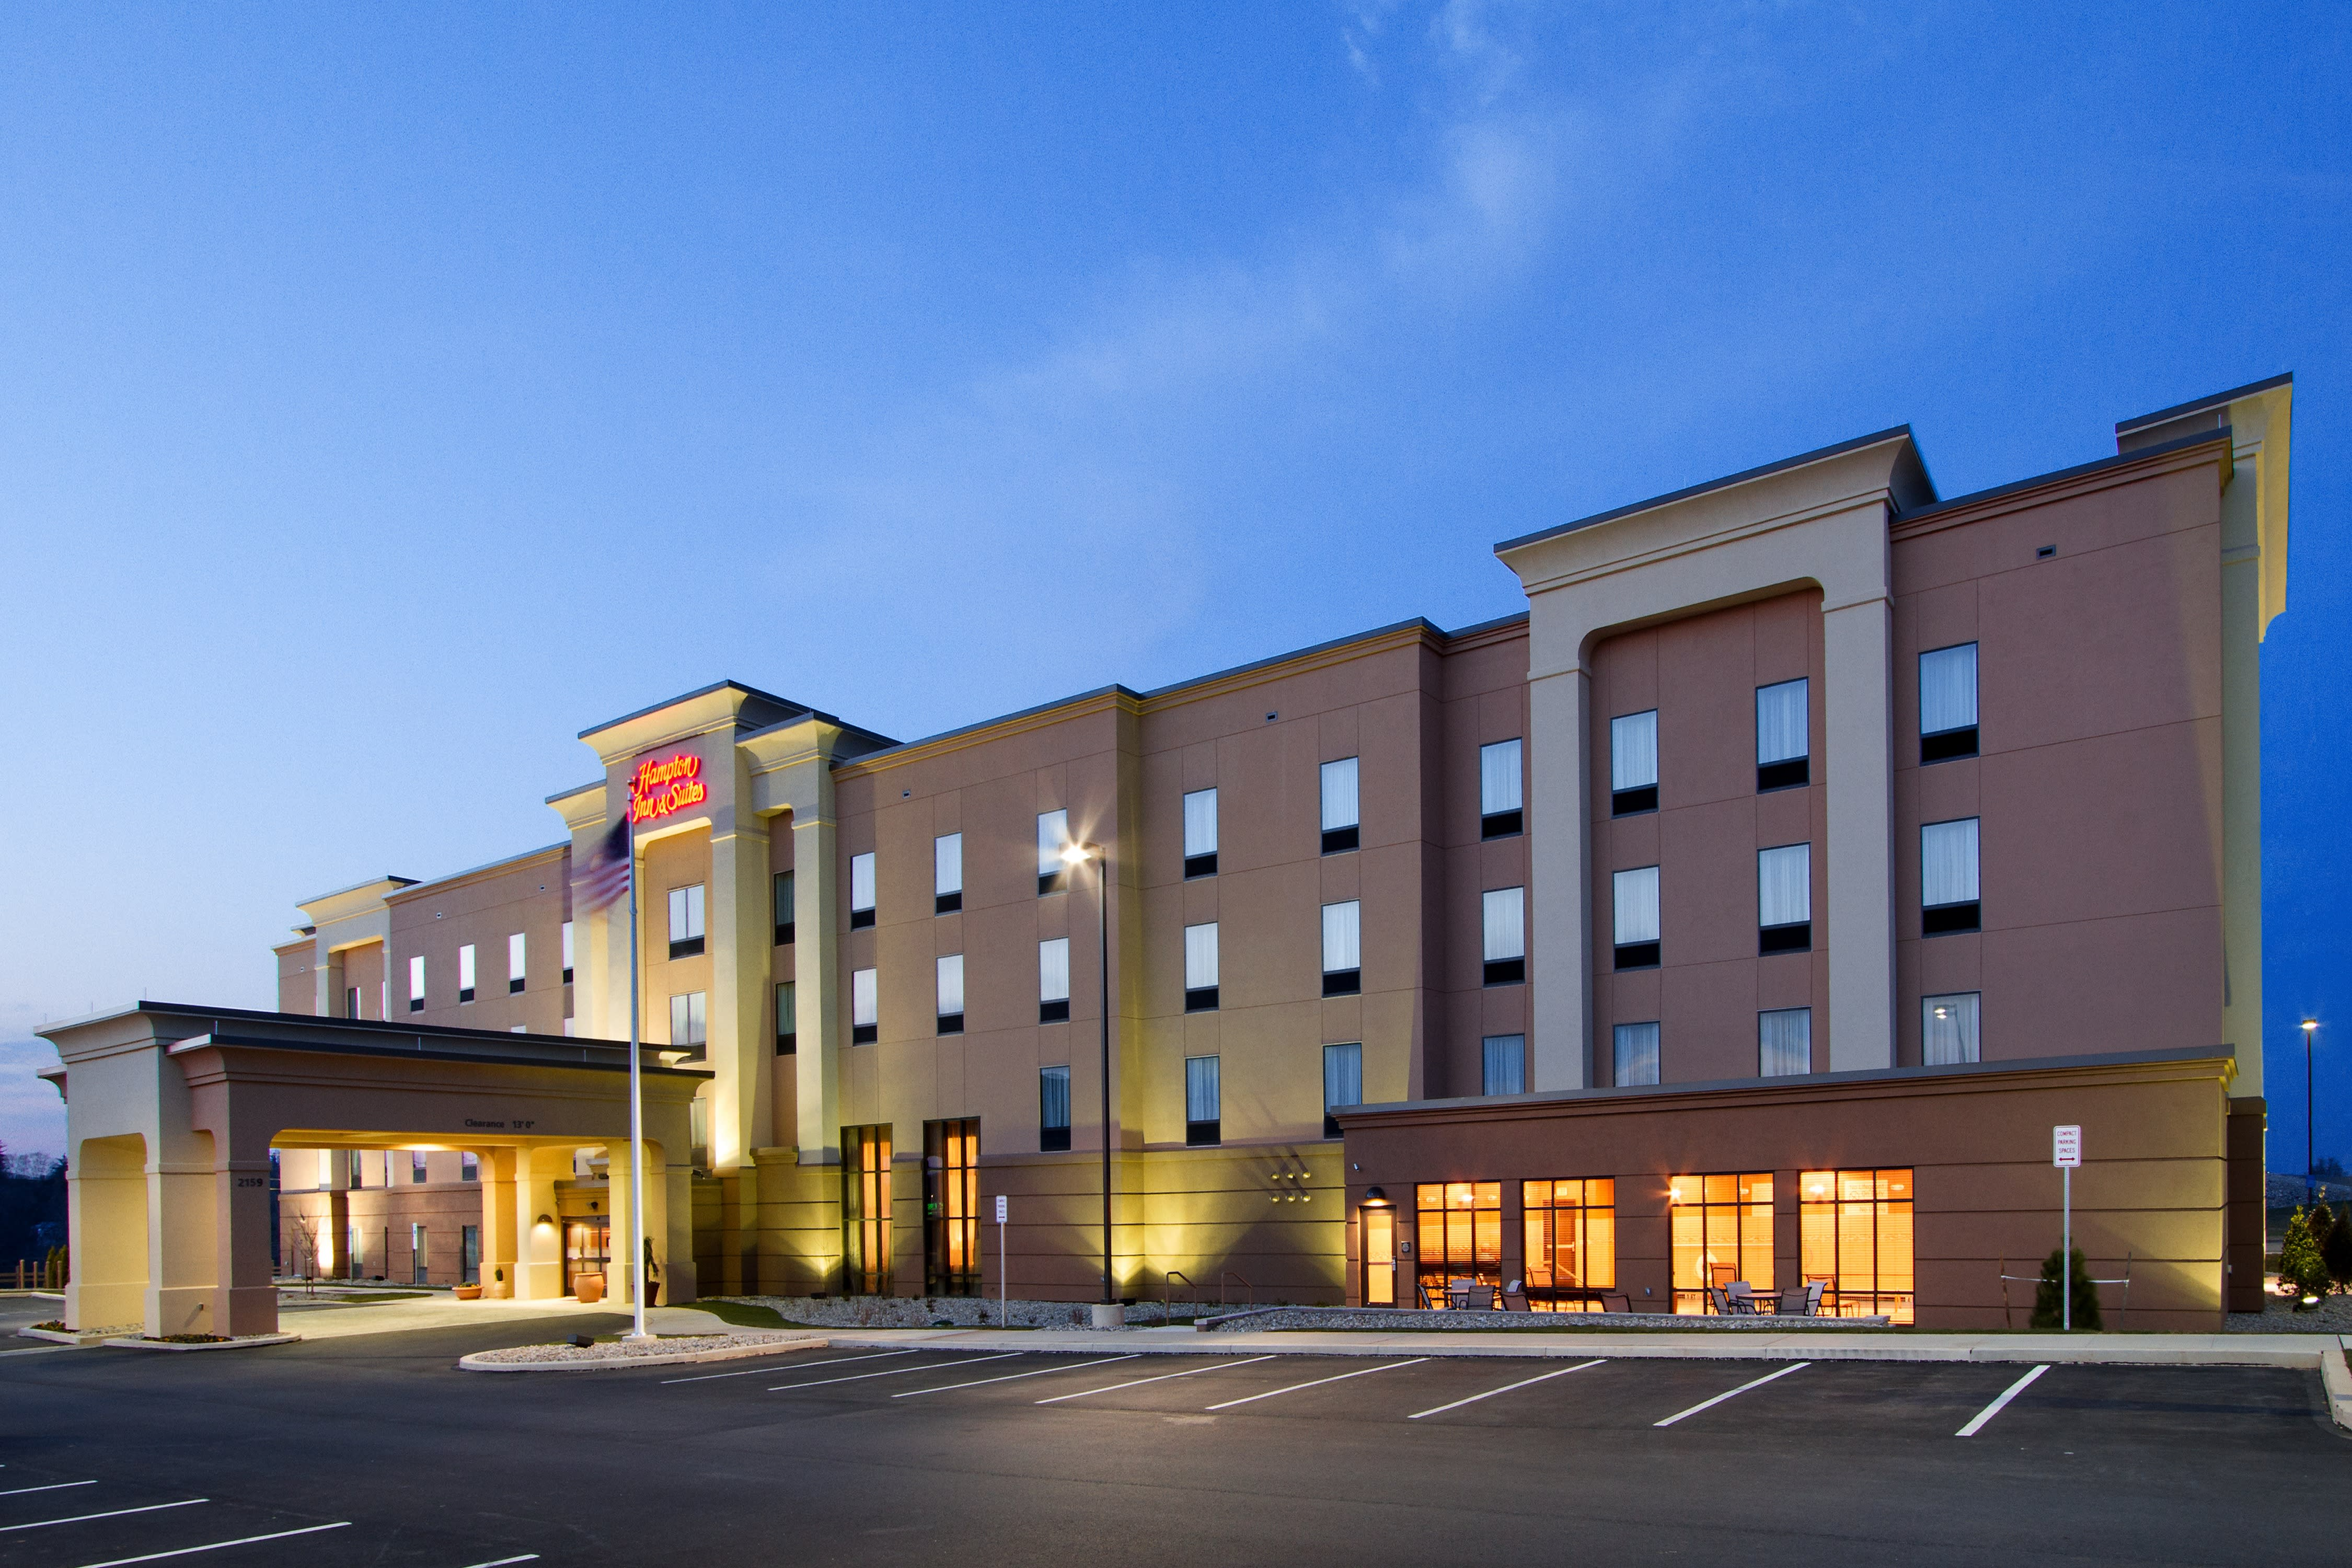 The Hampton Inn & Suites - York South is just one of many convenient lodging options for you and your guests.